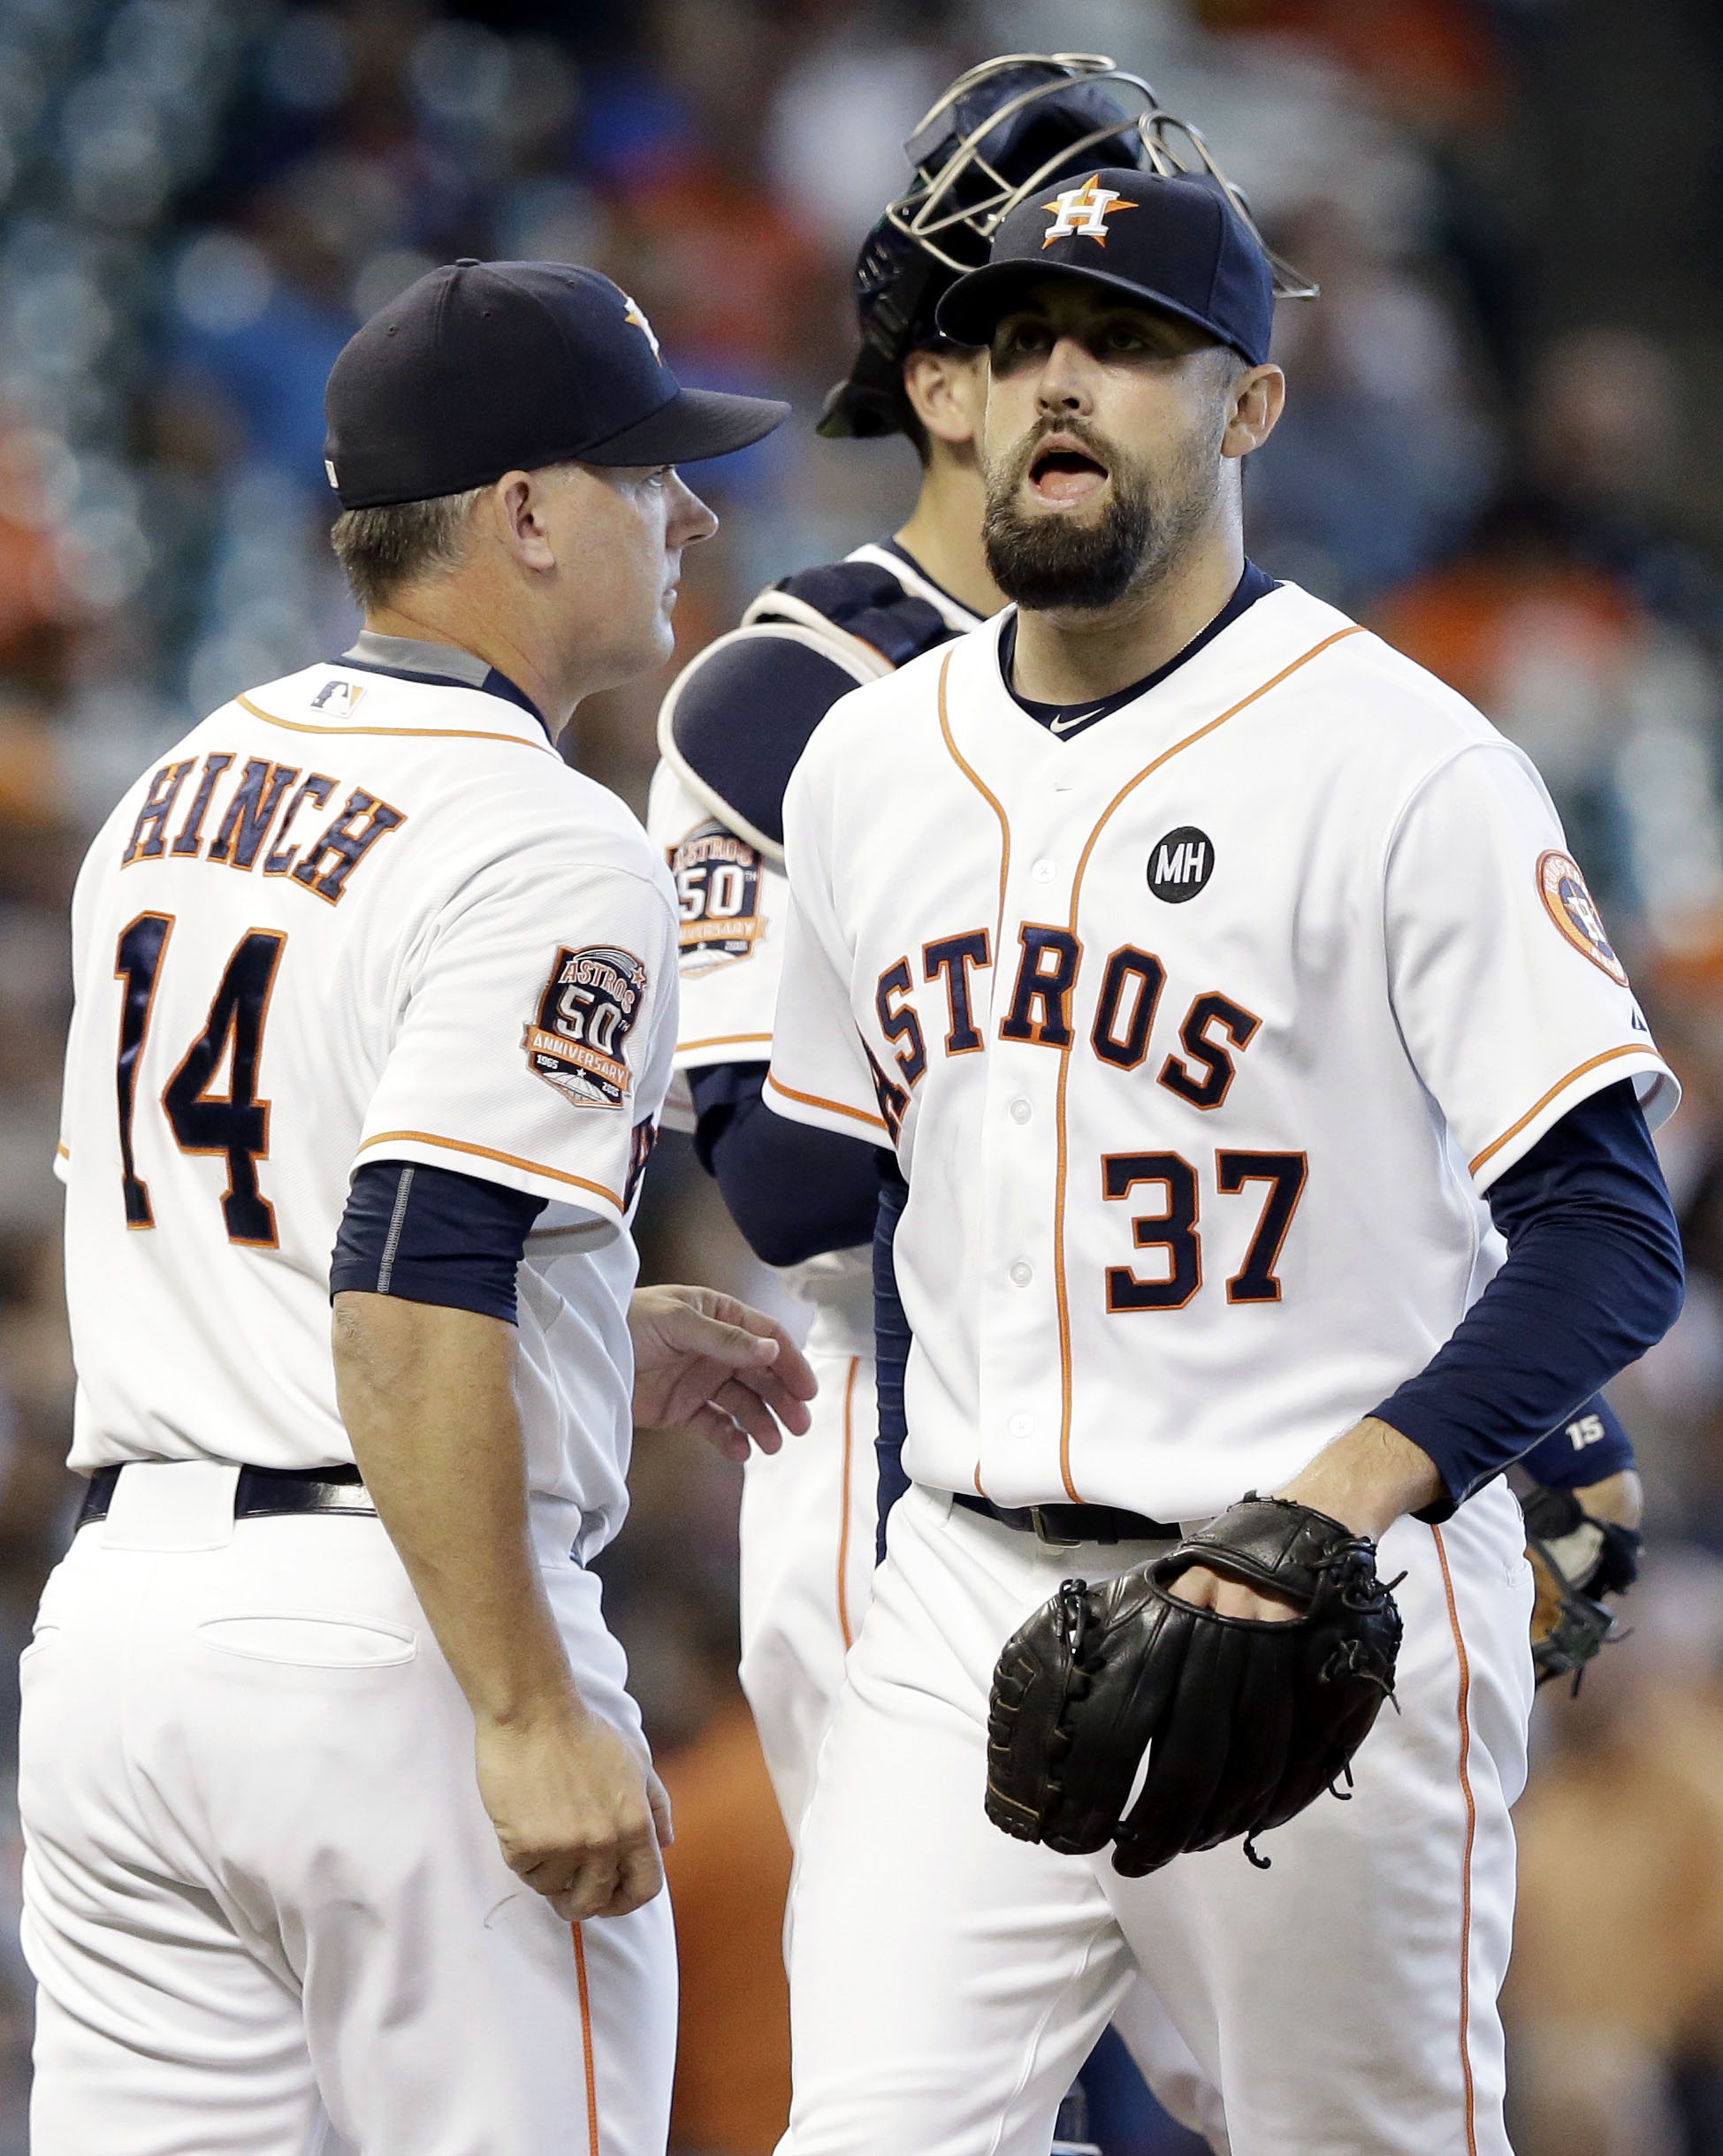 Houston Astros relief pitcher Pat Neshek (37) passes manager A.J. Hinch (14) as he leaves the mound after allowing the Los Angeles Angels to score three runs in the eighth inning of a baseball game Wednesday, Sept. 23, 2015, in Houston. (AP Photo/Pat Sull